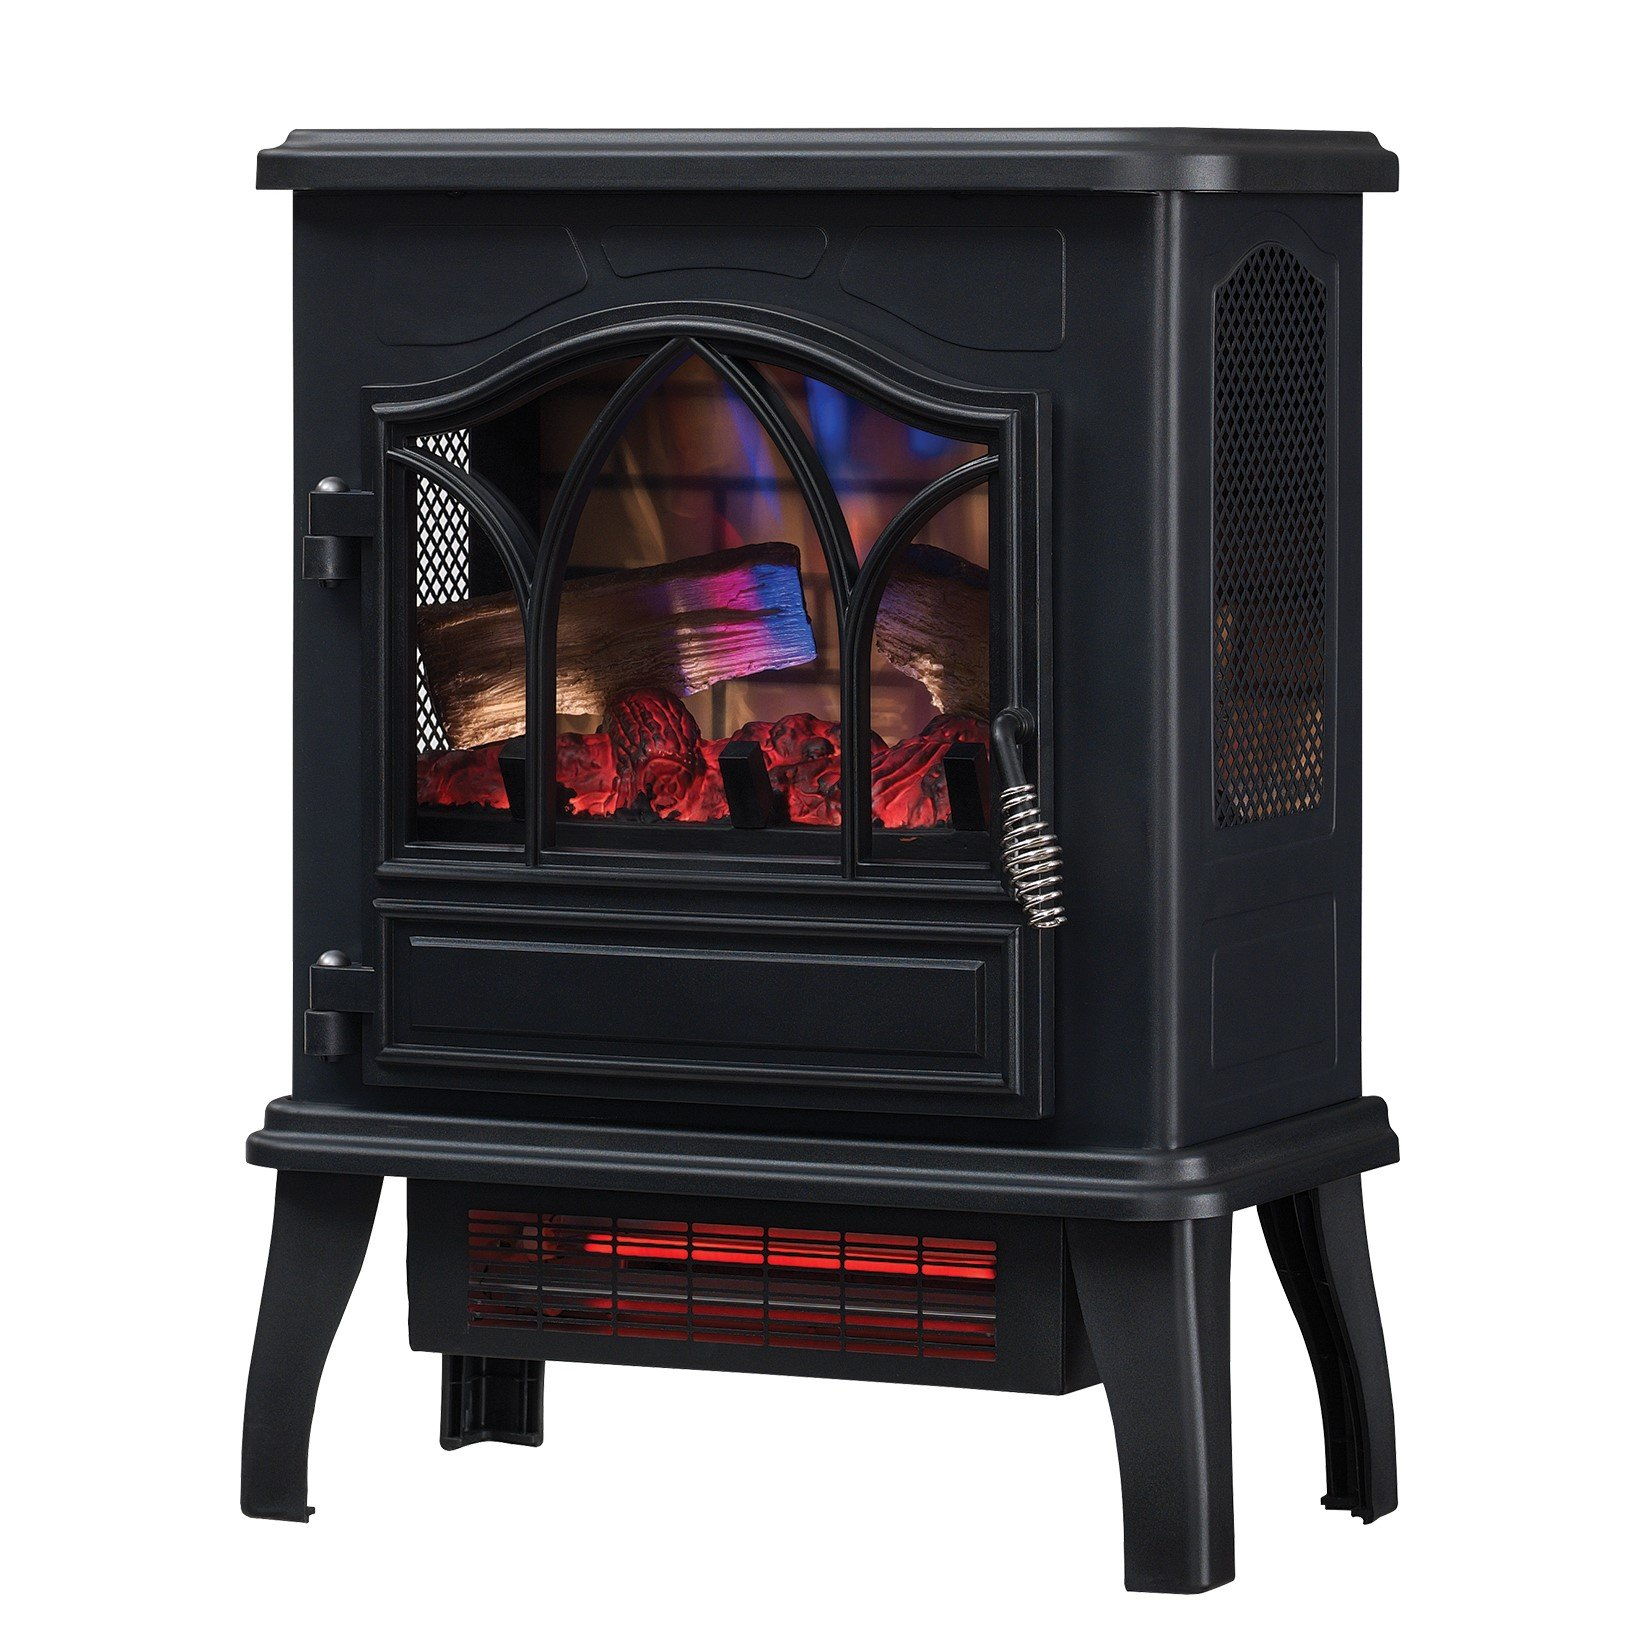 Duraflame DFI-470-04 Infrared Quartz Fireplace Stove, Black by Duraflame Electric